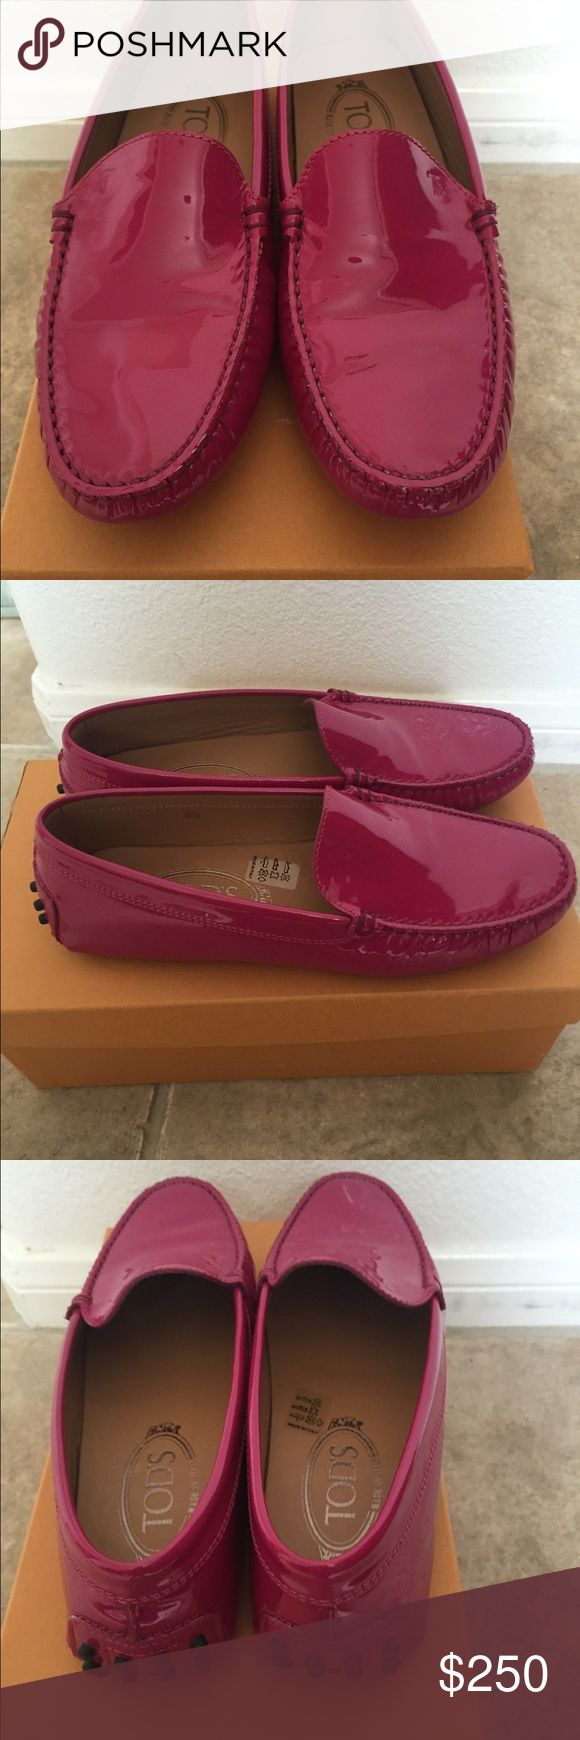 Tods patent leather driving loafer Never worn! Fuschia patent leather Tods driving shoe. Can send with box and dust bag. Tod's Shoes Flats & Loafers